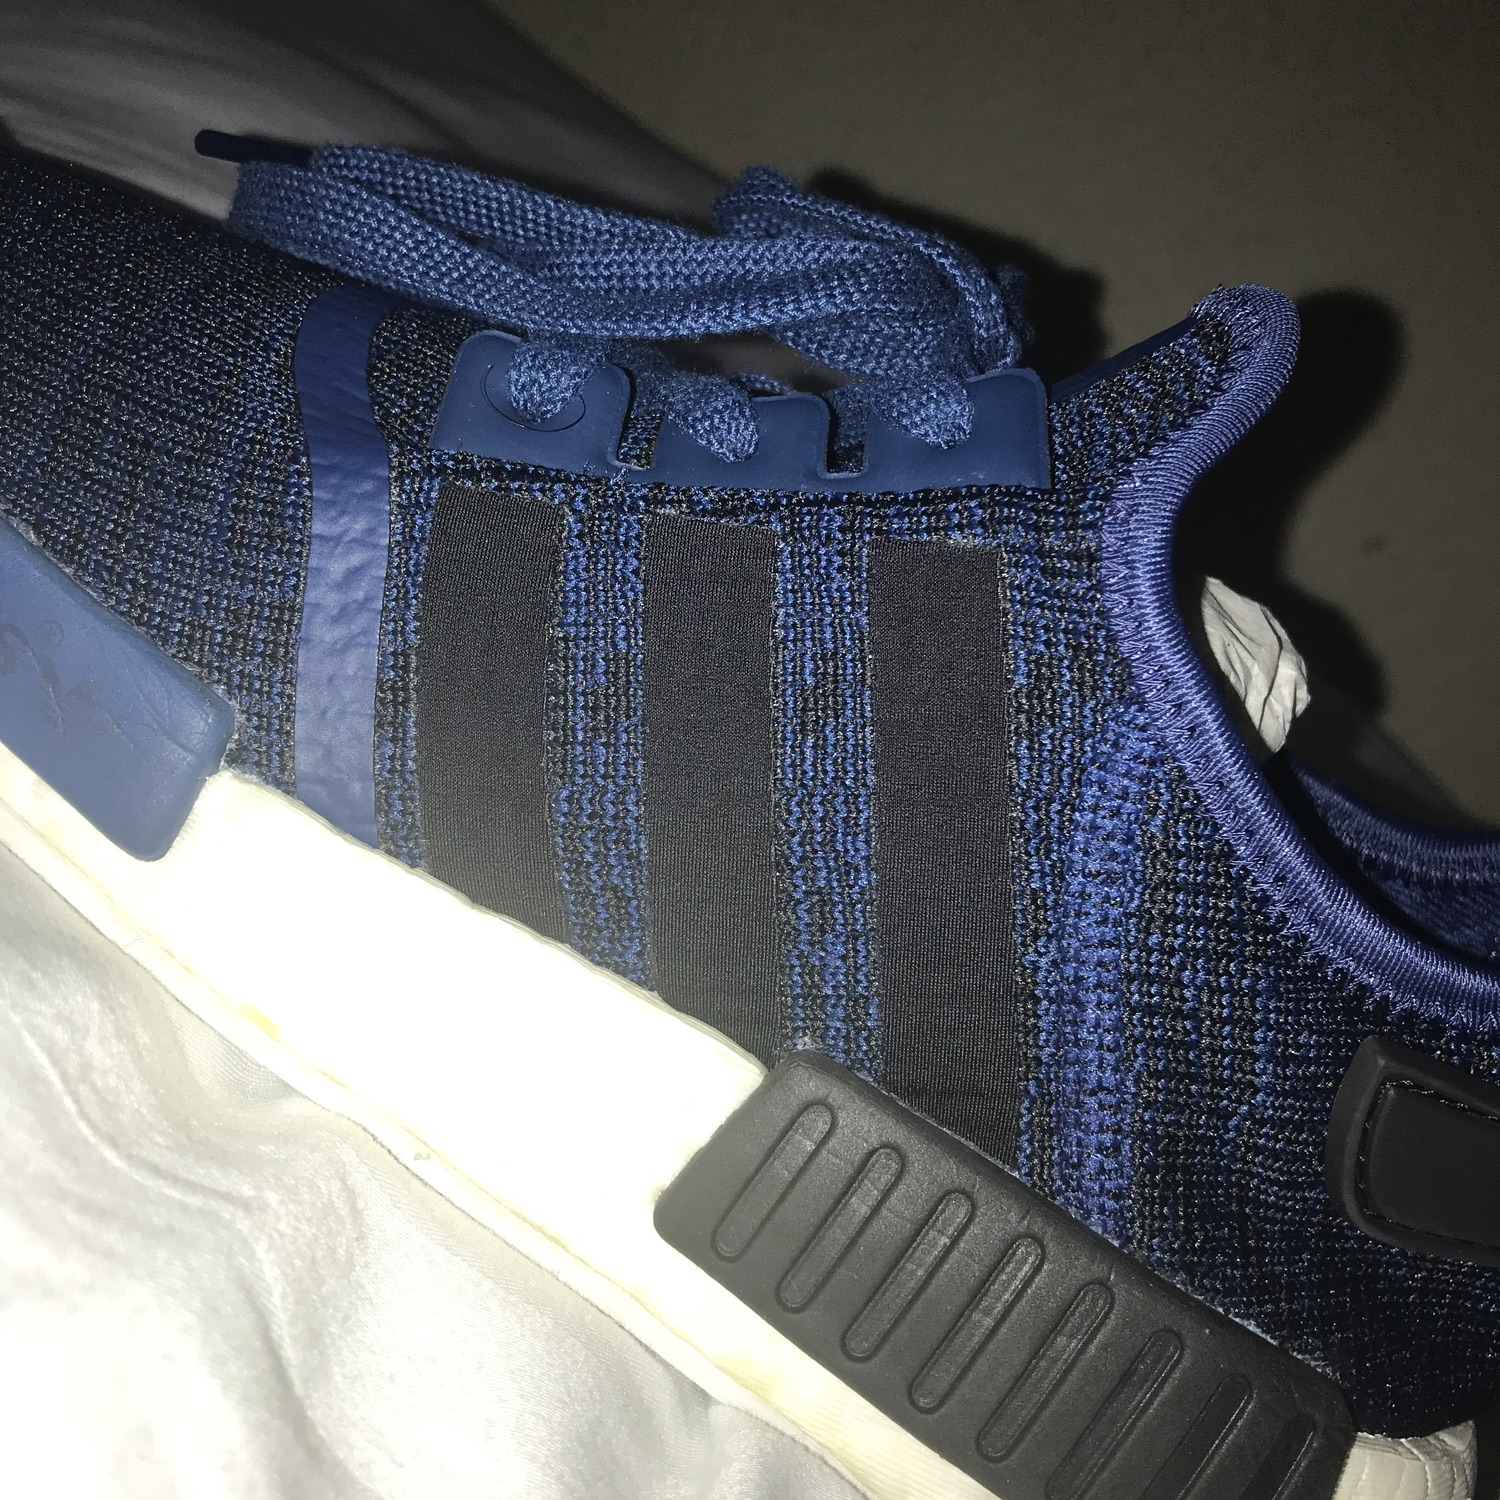 new arrivals 849ad 2fdc3 Adidas Nmd R1 Mystery Blue/Core Black/White